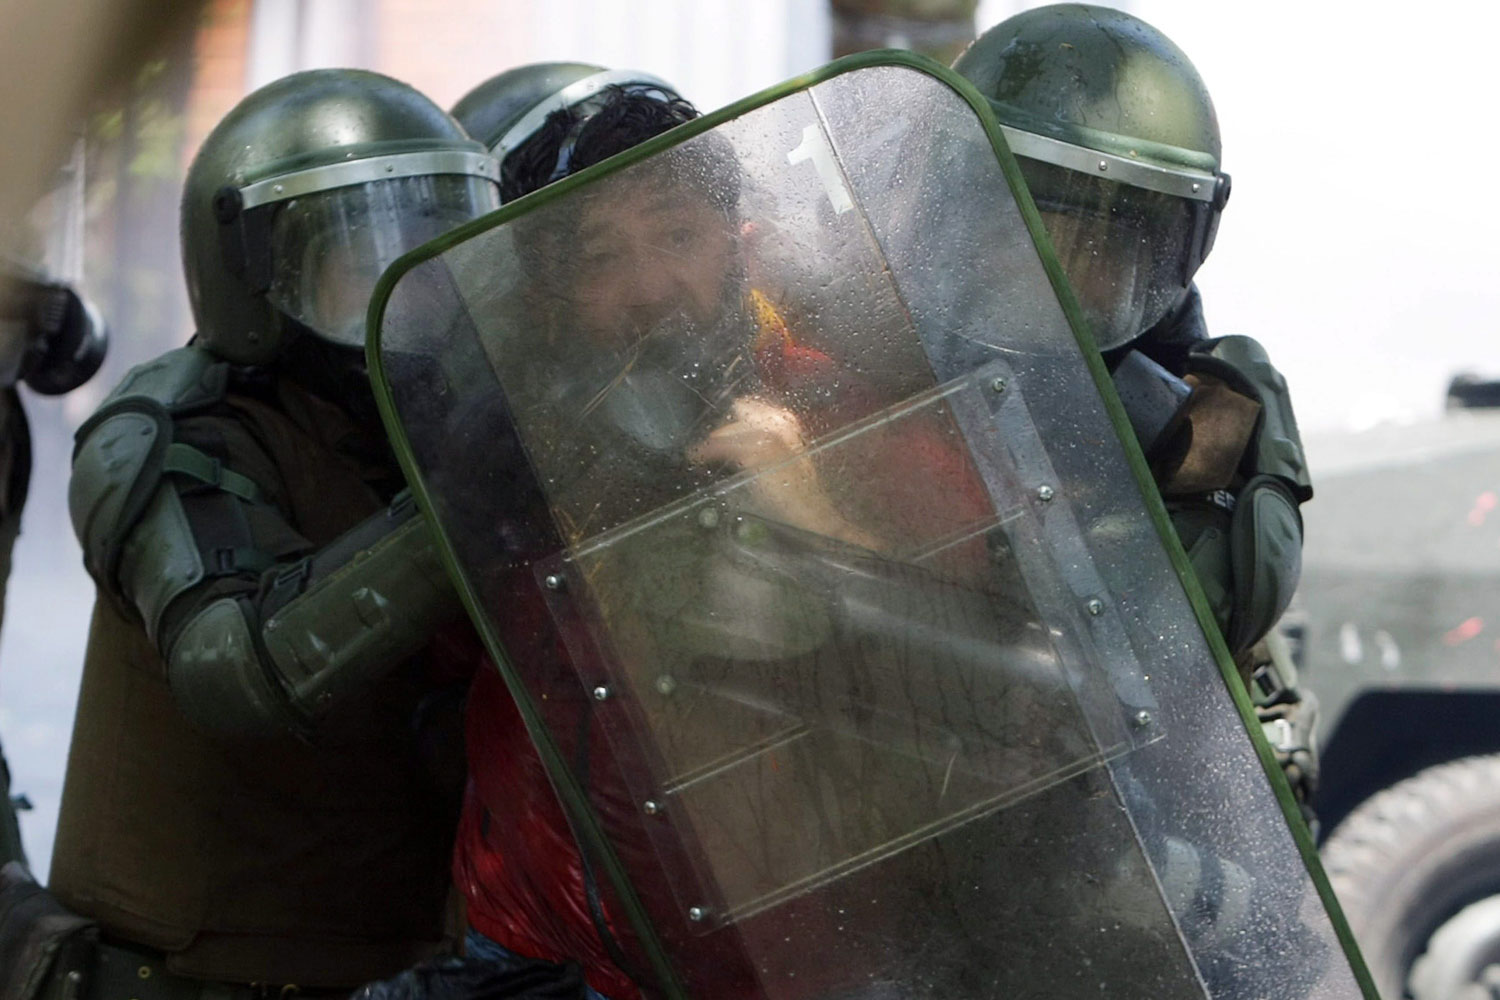 October 18, 2011. Agence France Presse photographer, Hector Retamal, is arrested by police during a protest in Santiago, Chile, on the first day of a new national strike called by students, that was described by government as a  complete failure.